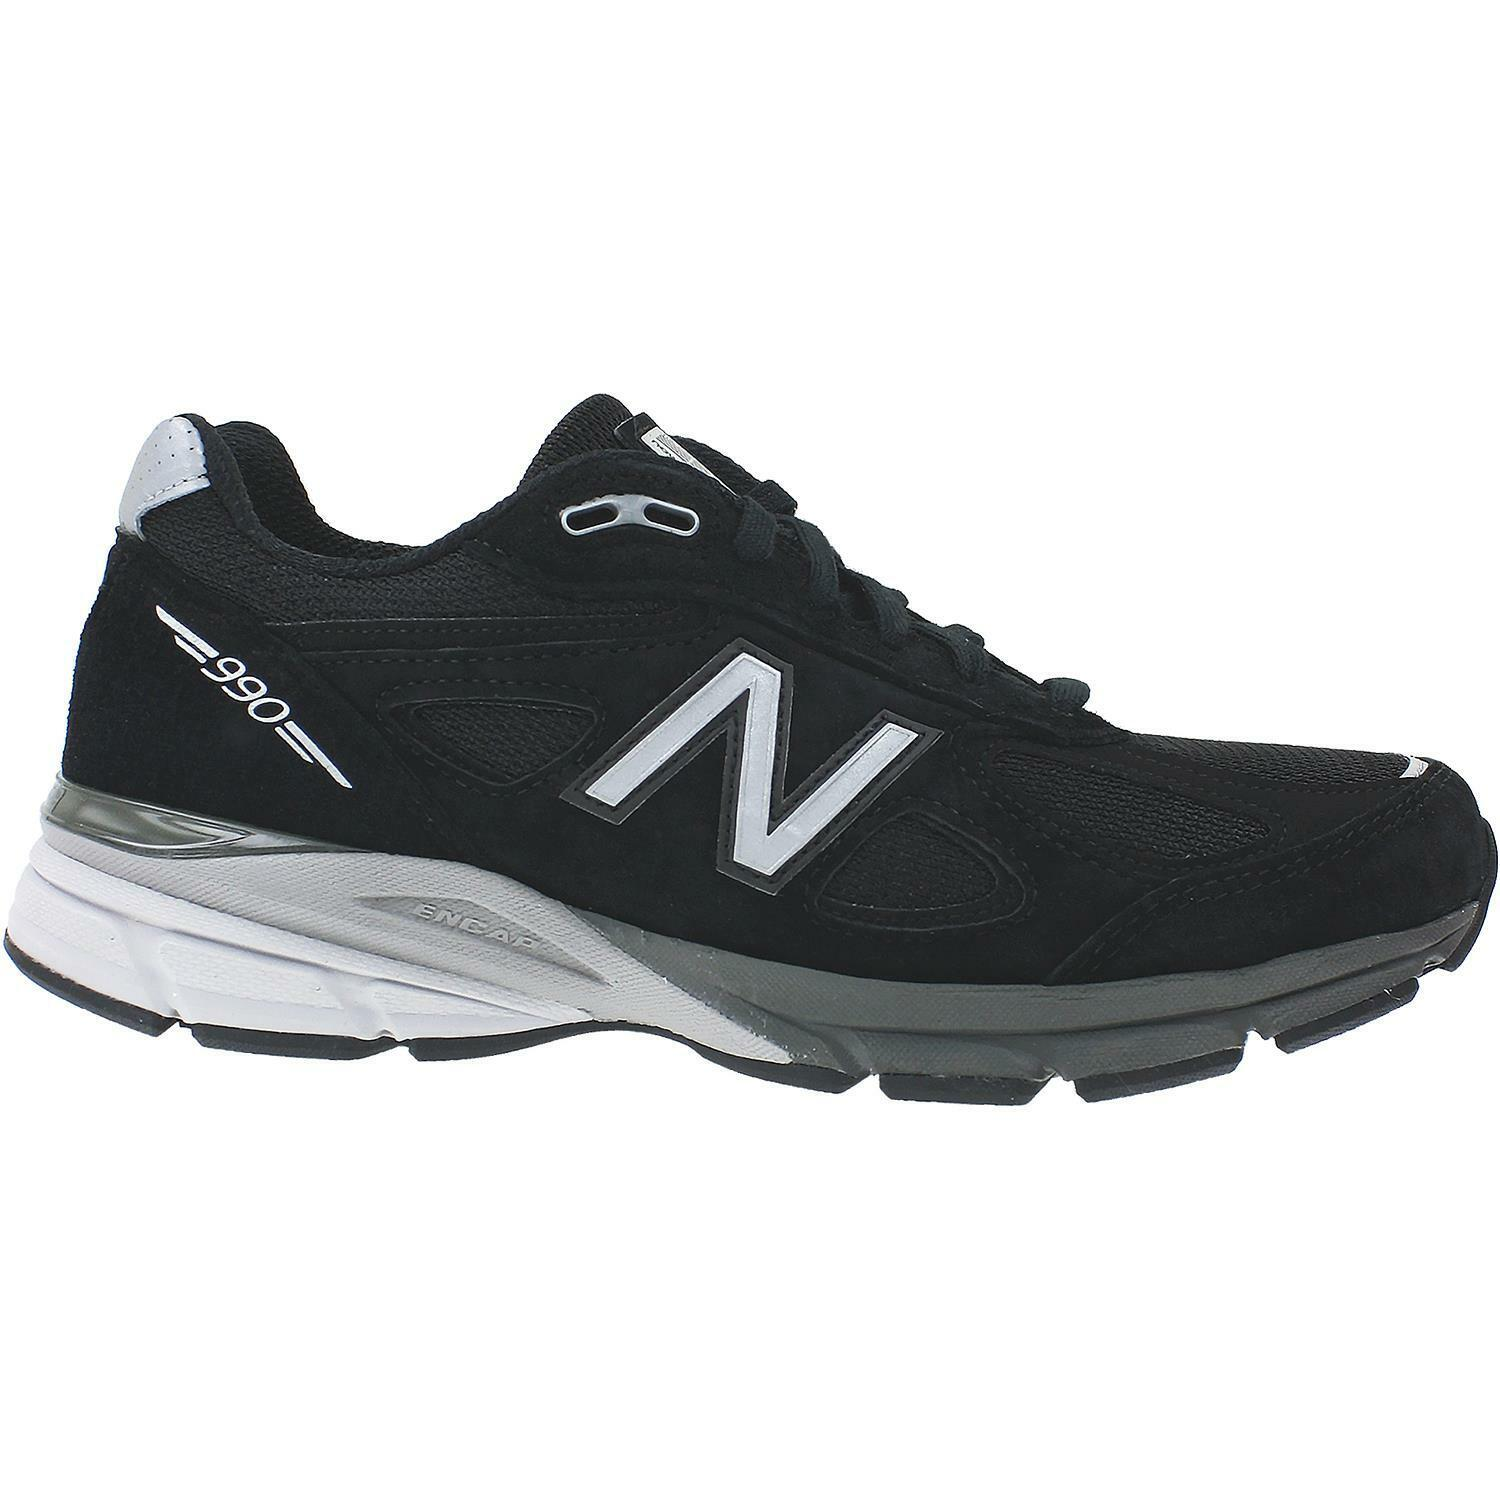 nouveau   990v4 made in USA Homme paniers M990BK4 fabricants Standard RETAIL PRICE   175